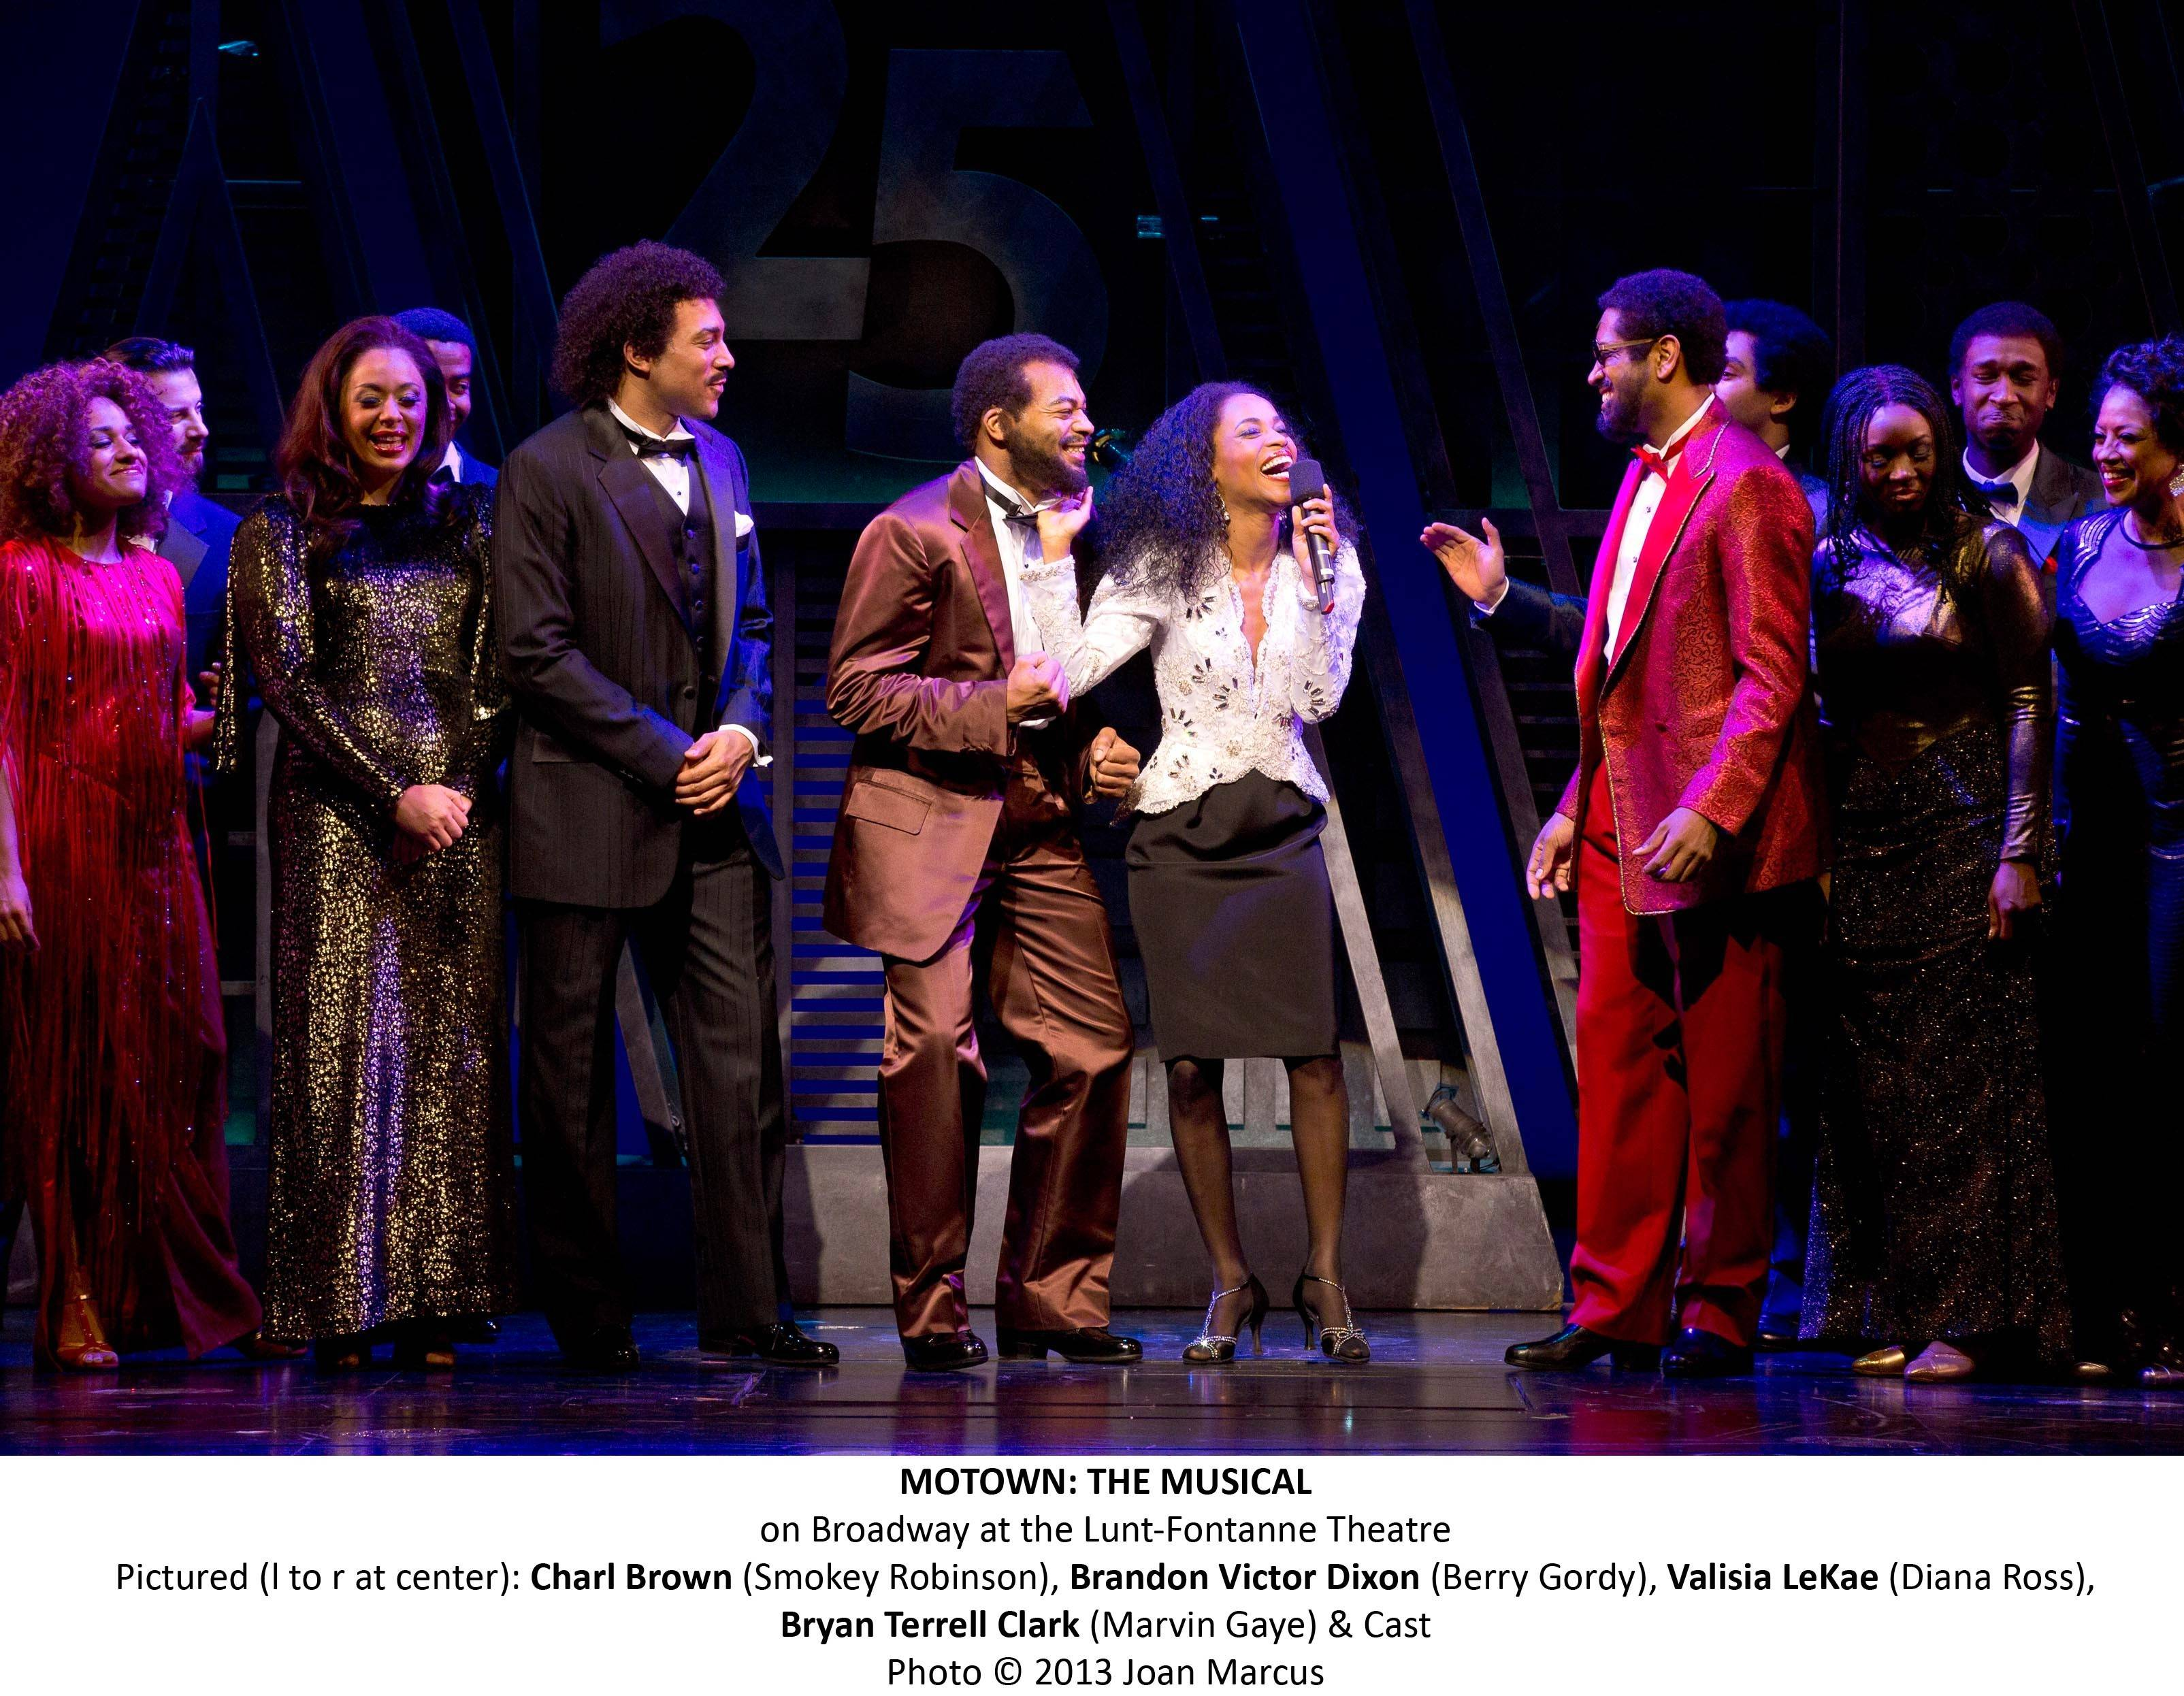 "Charl Brown, Brandon Victor Dixon, Valisia LeKae and Bryan Terrell Clark starred in the 2013 Broadway production of ""Motown The Musical."" The national tour of the show launches in Chicago at the Oriental Theatre for a 12-week run starting Tuesday, April 22."